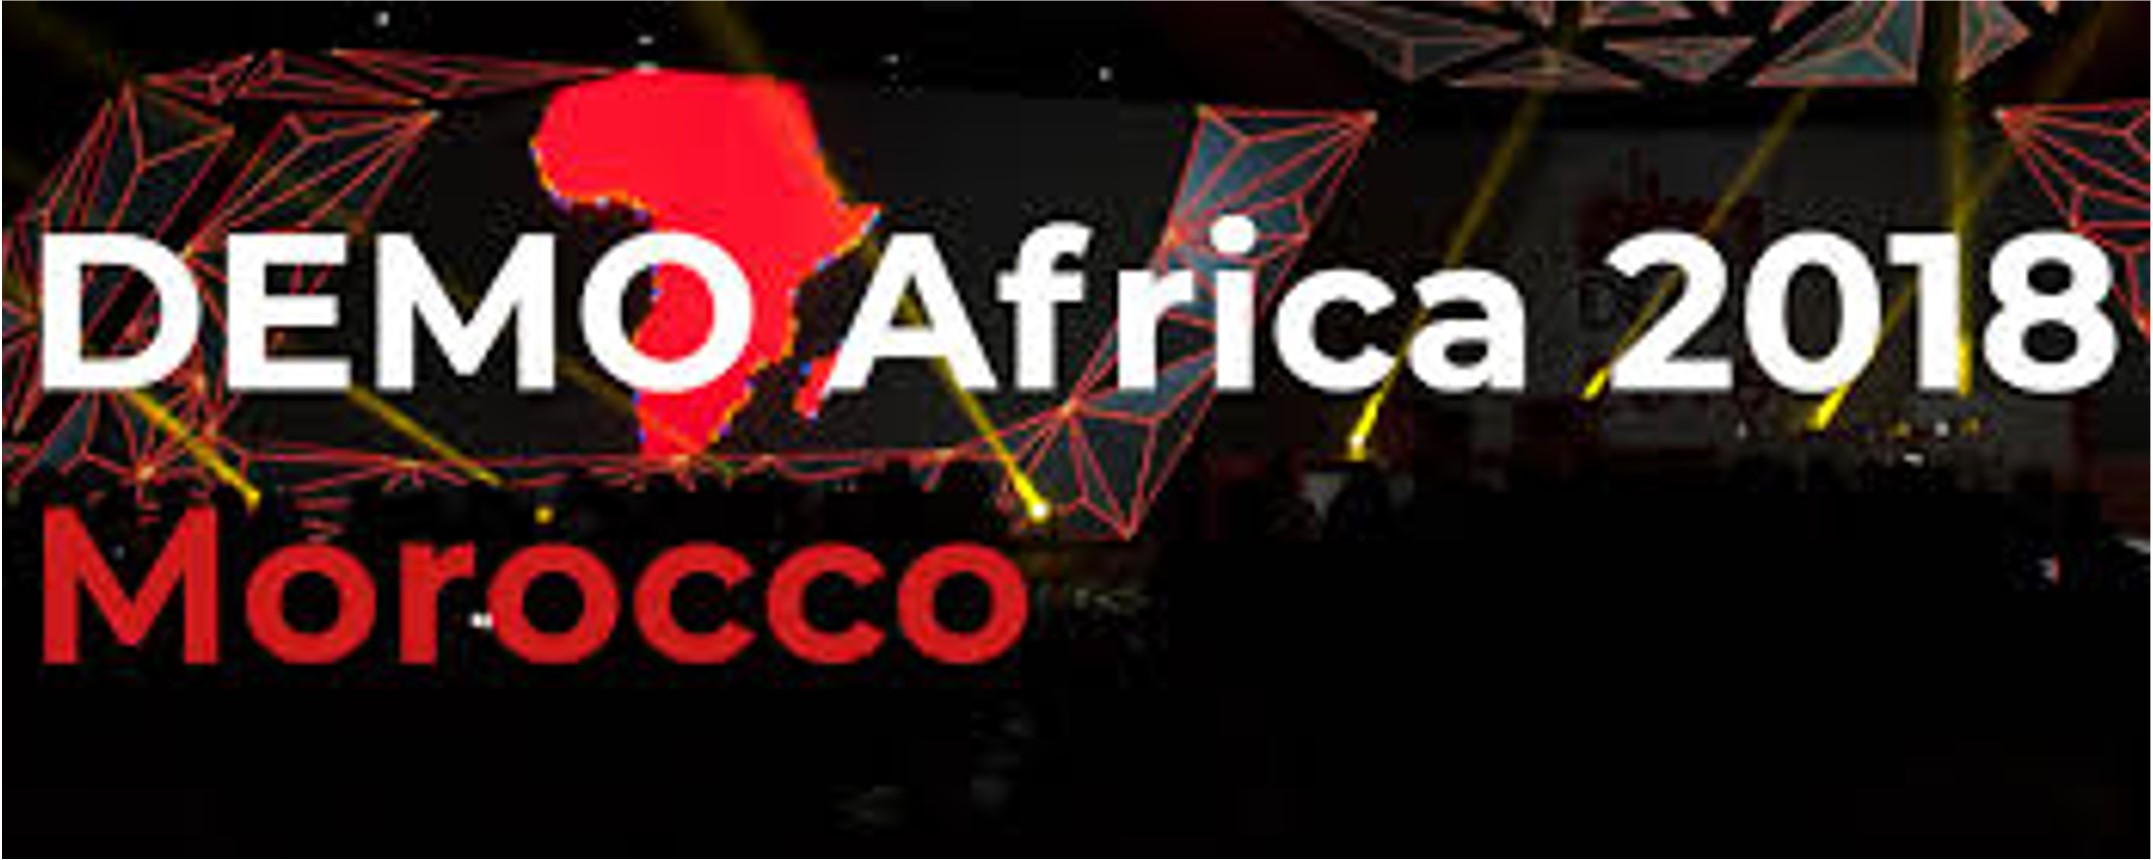 DEMO Africa - DEMO Africa 2018 Morocco Movemeback African event cover image